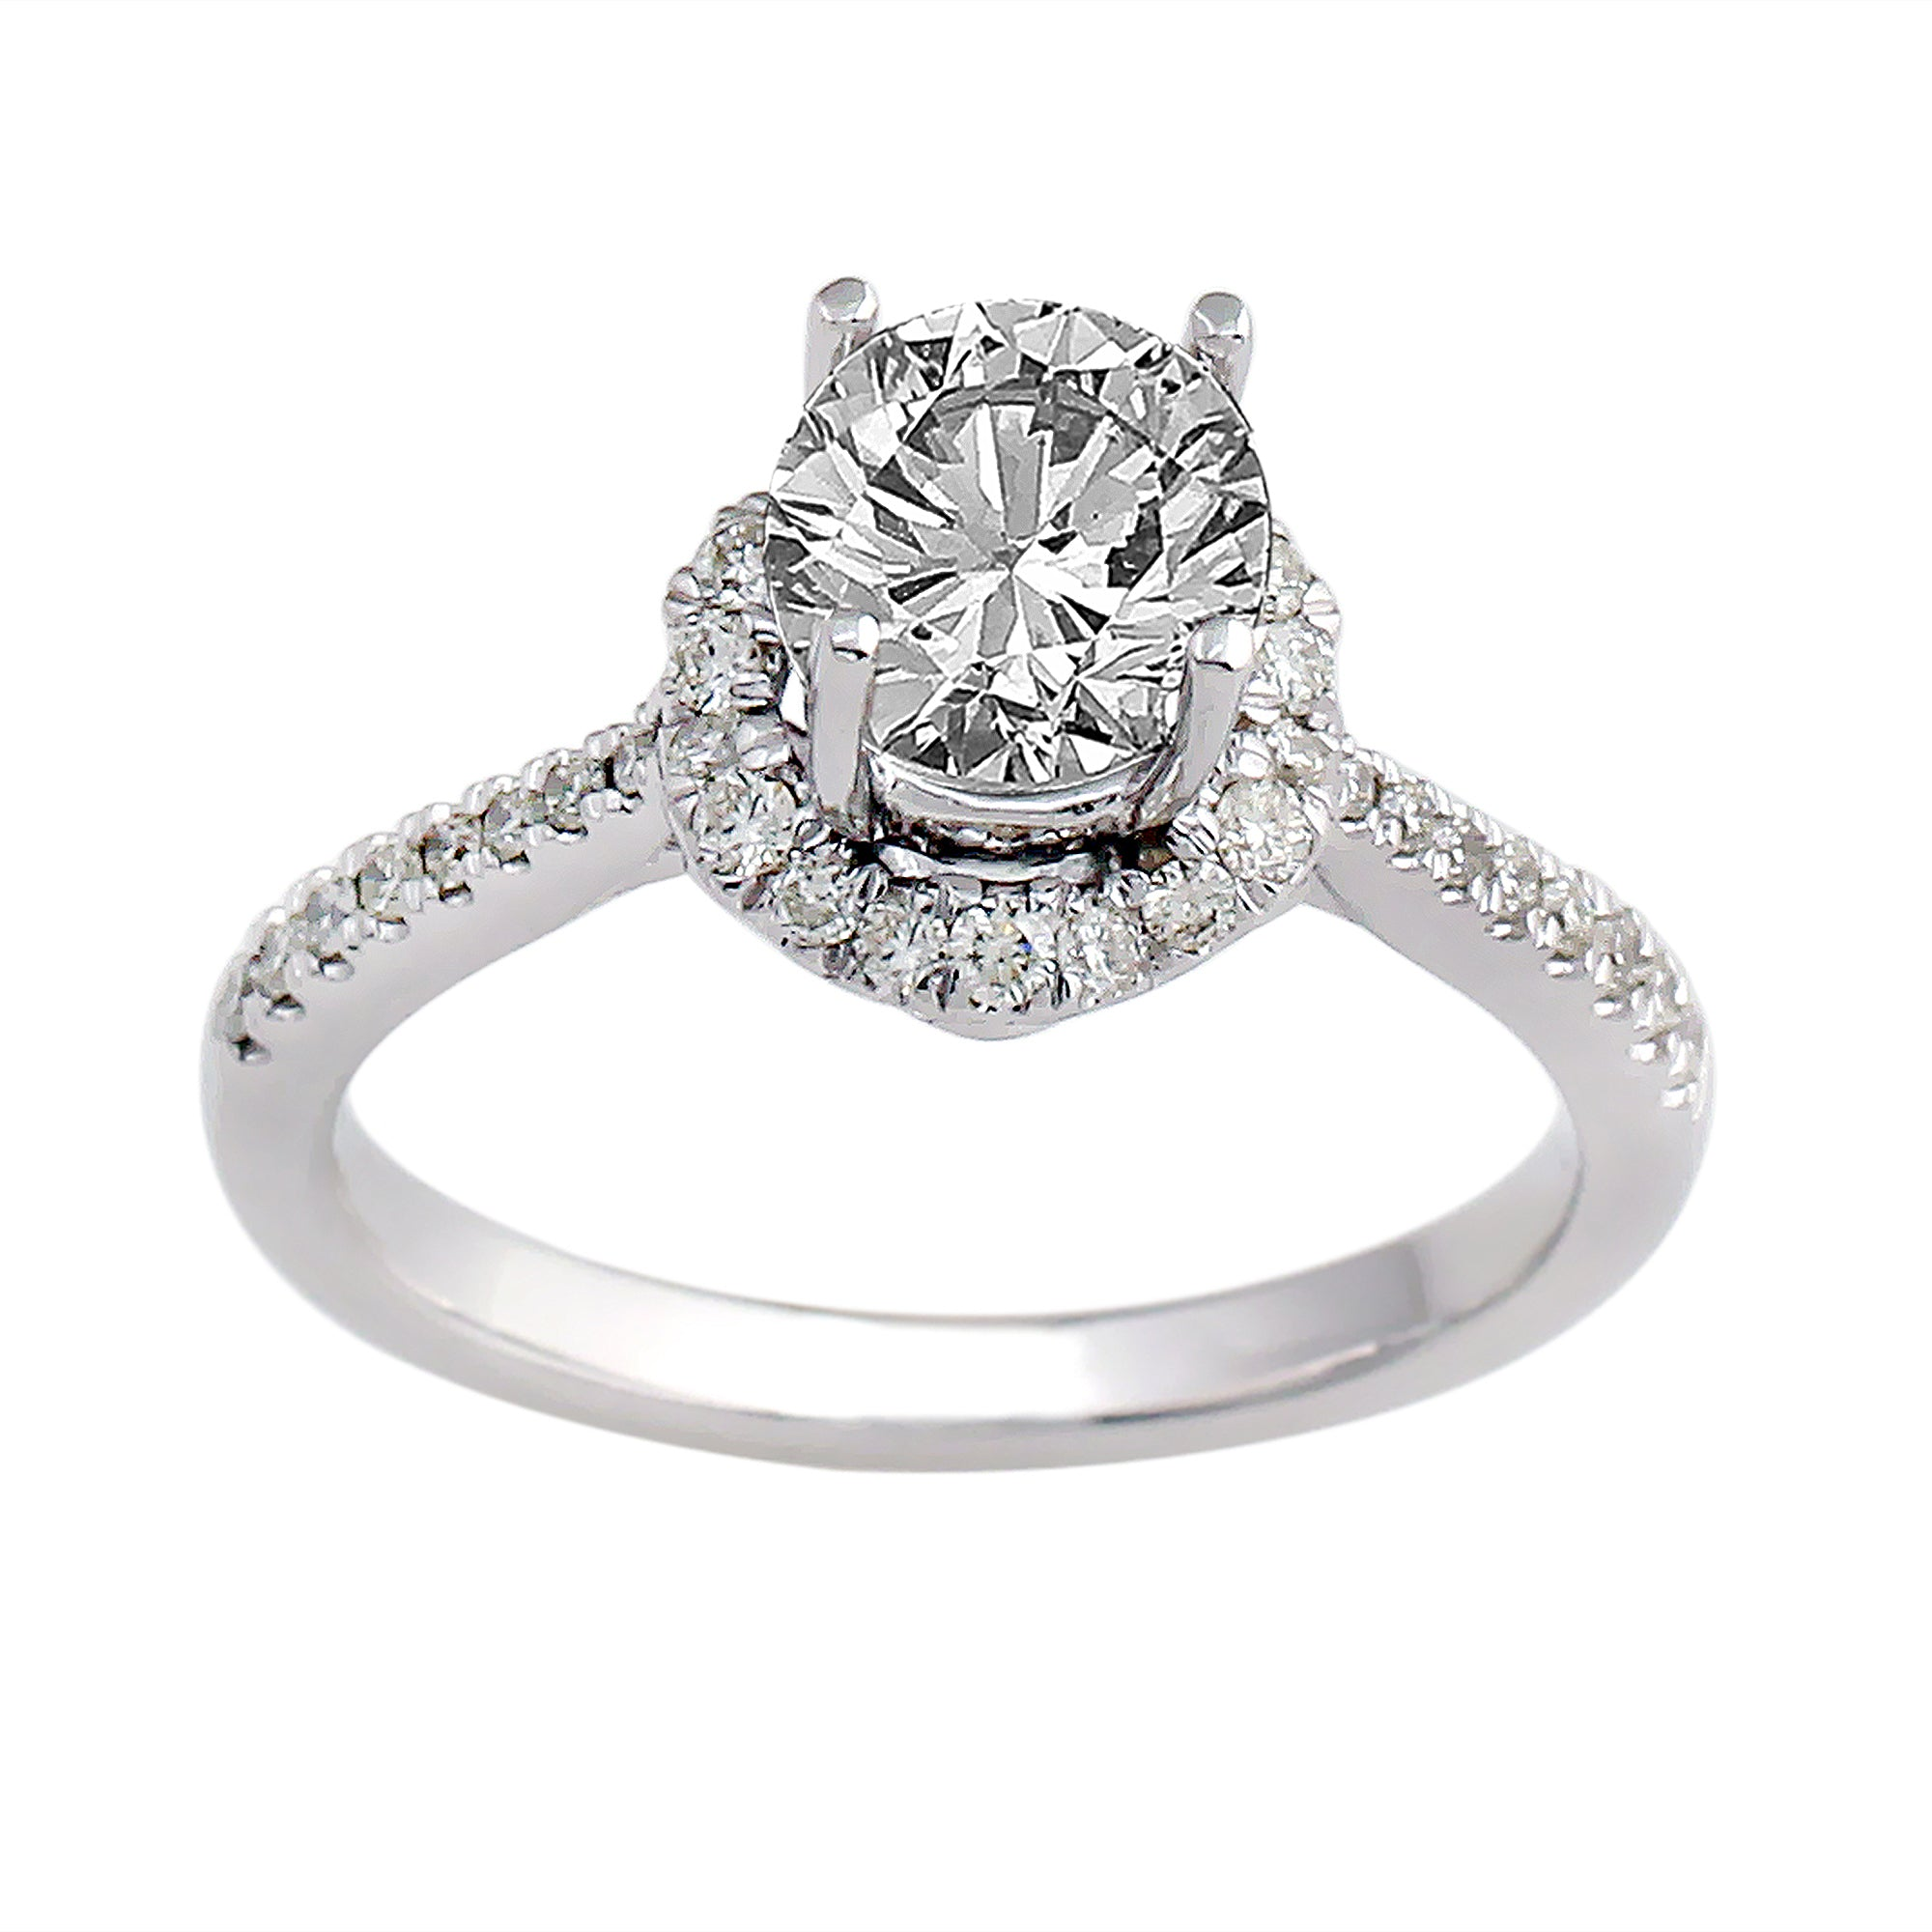 14K White Gold 0.35CTTW Lab-Grown Diamond Semi-Mount Ring